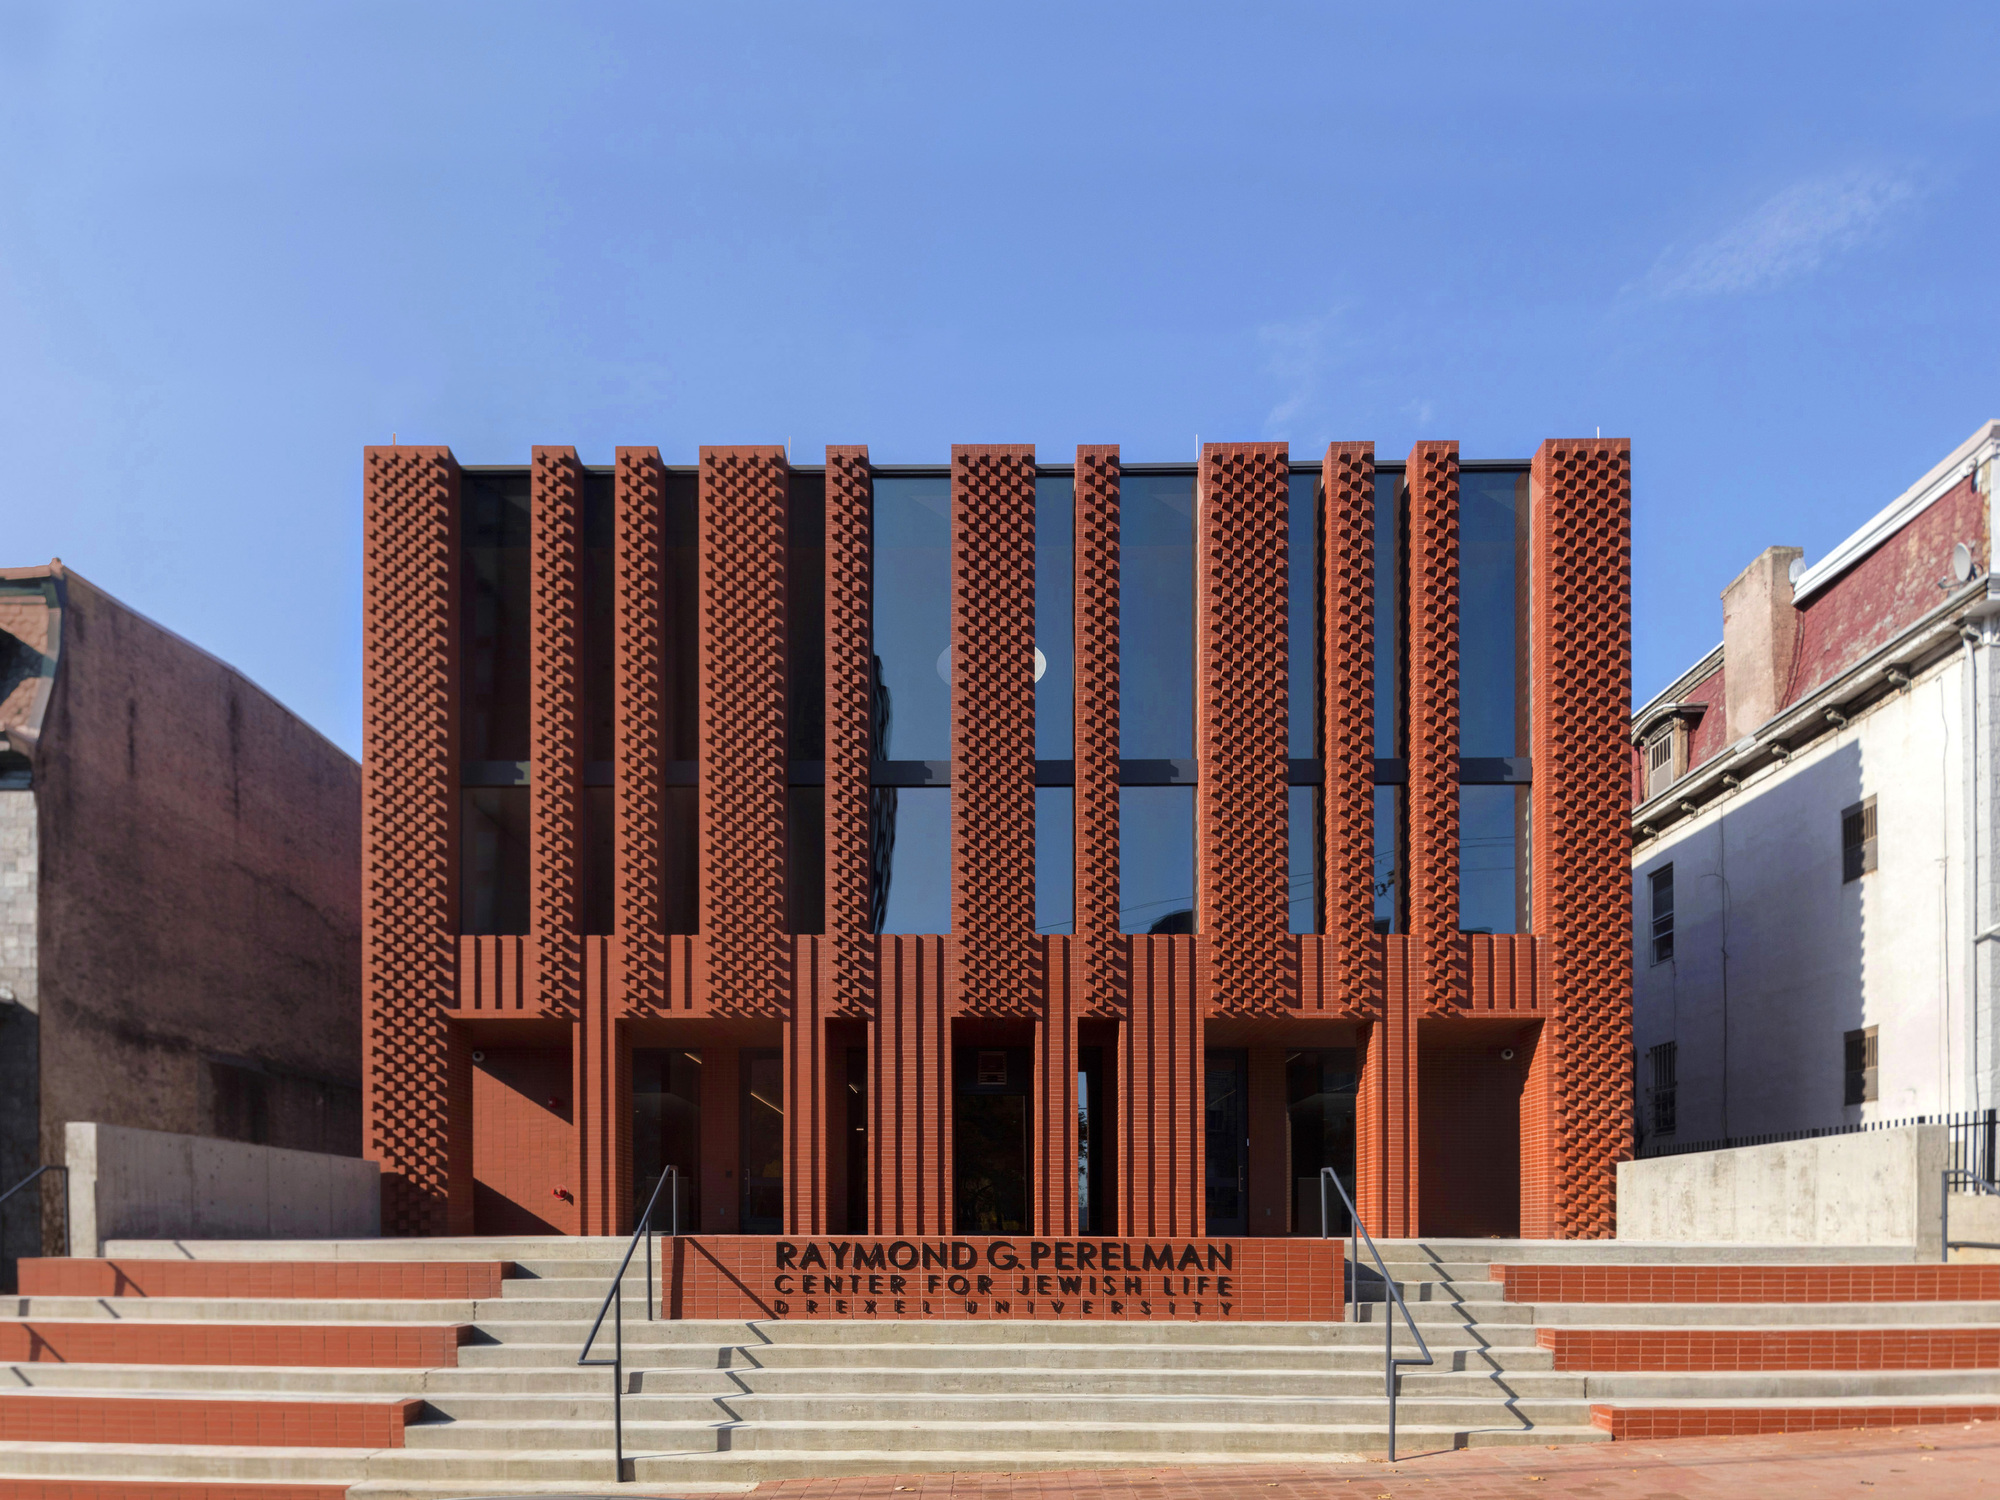 center for jewish life at drexel university stanley saitowitz natoma architects archdaily. Black Bedroom Furniture Sets. Home Design Ideas